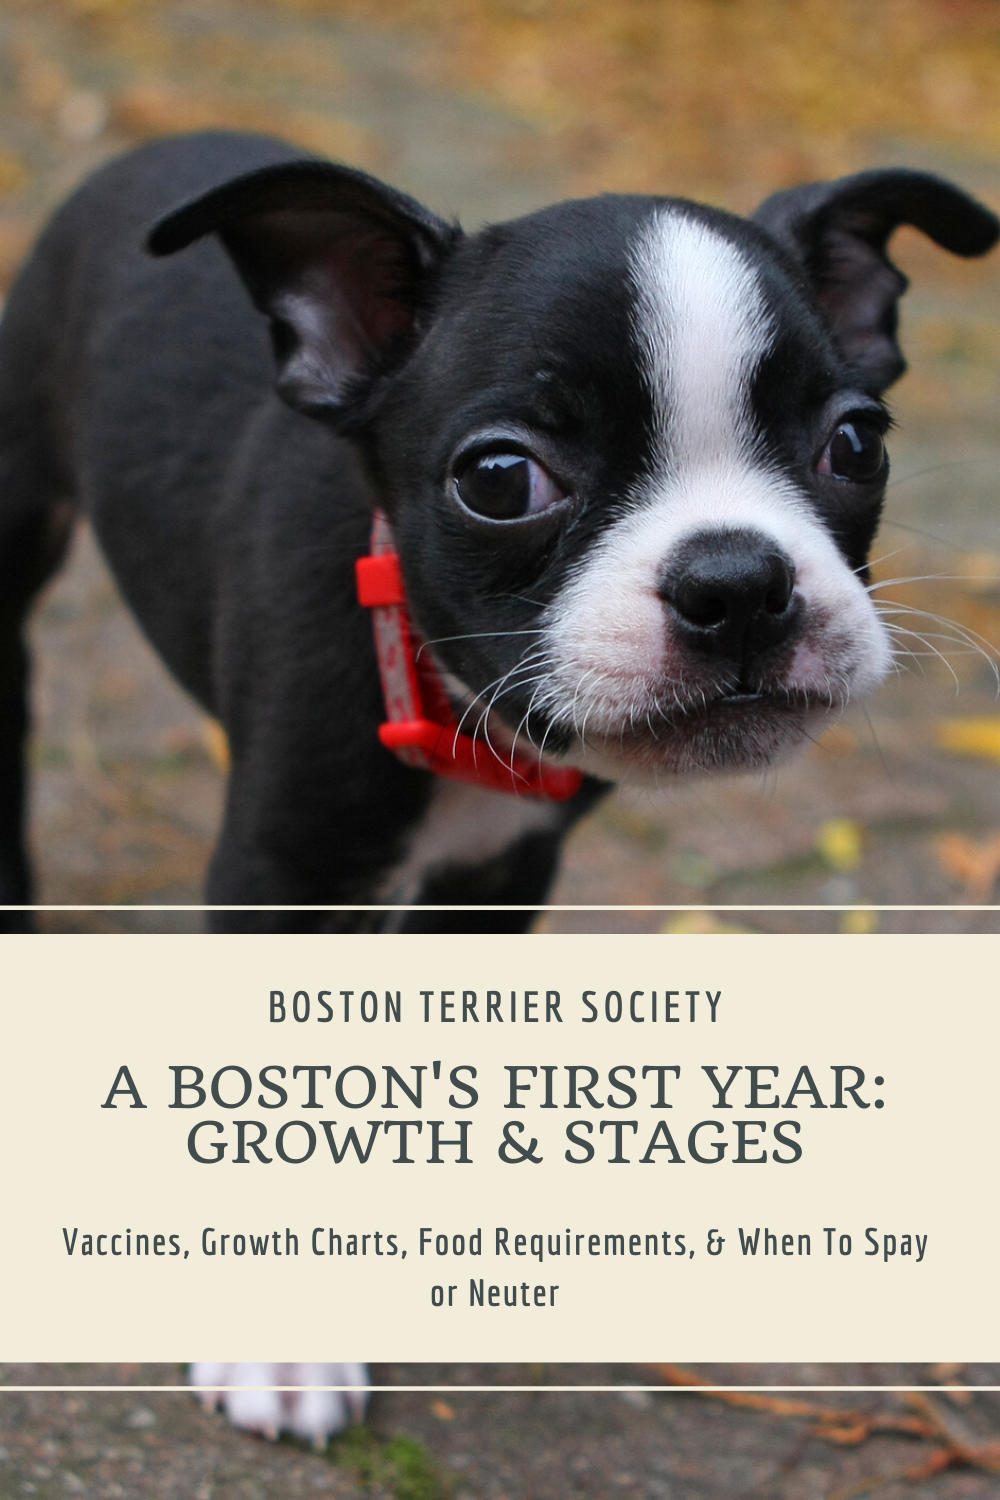 A Boston S First Year Stages Of Growth Puppy Development Boston Terrier Society In 2020 Boston Terrier Boston Terrier Funny Boston Terrier Puppy